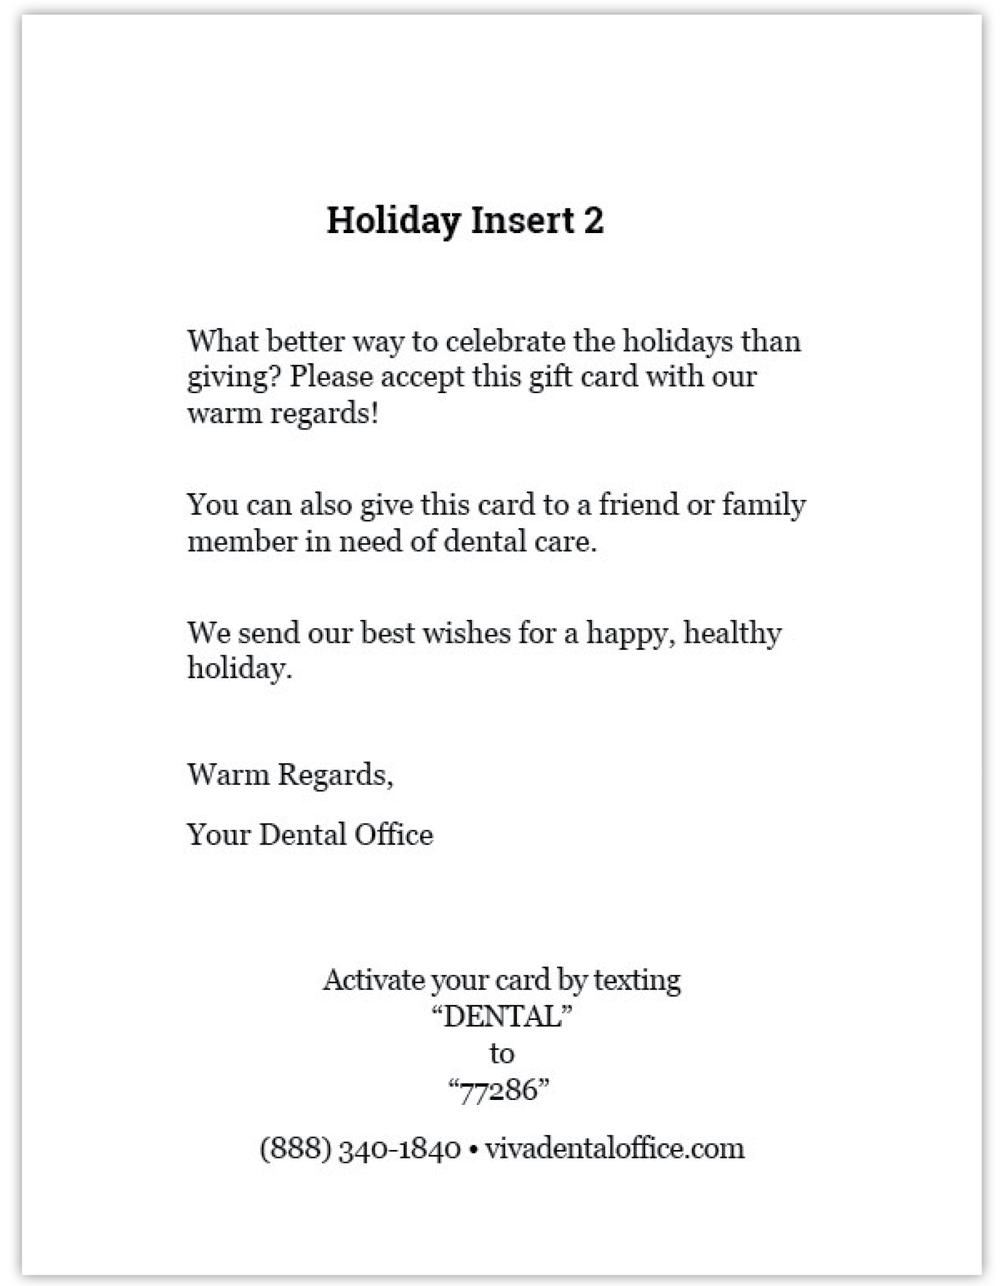 Holiday Insert 2.png